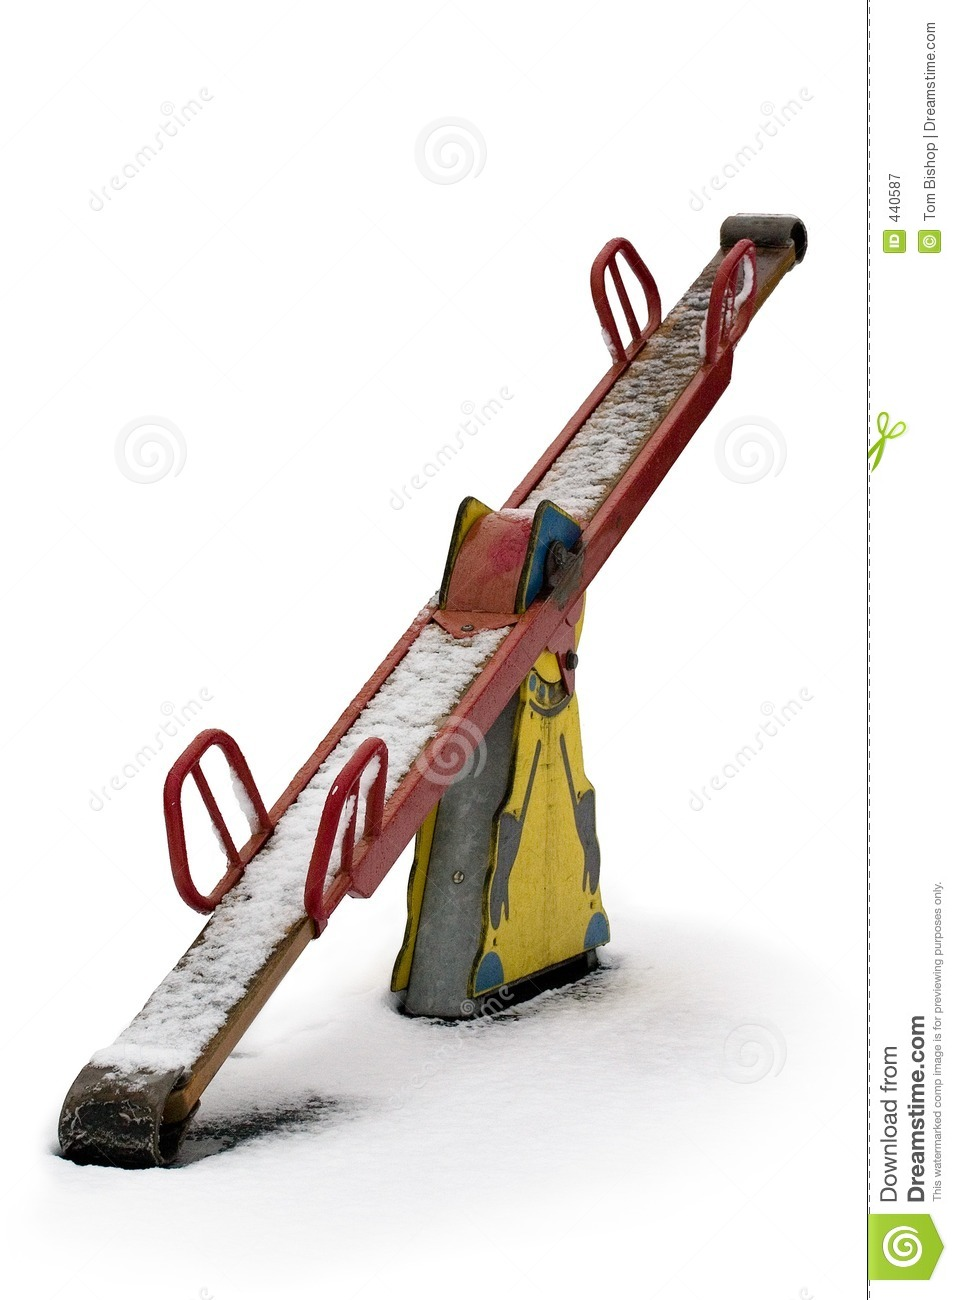 Snowy seesaw royalty free stock photography image 440587 for Seesaw plans designs